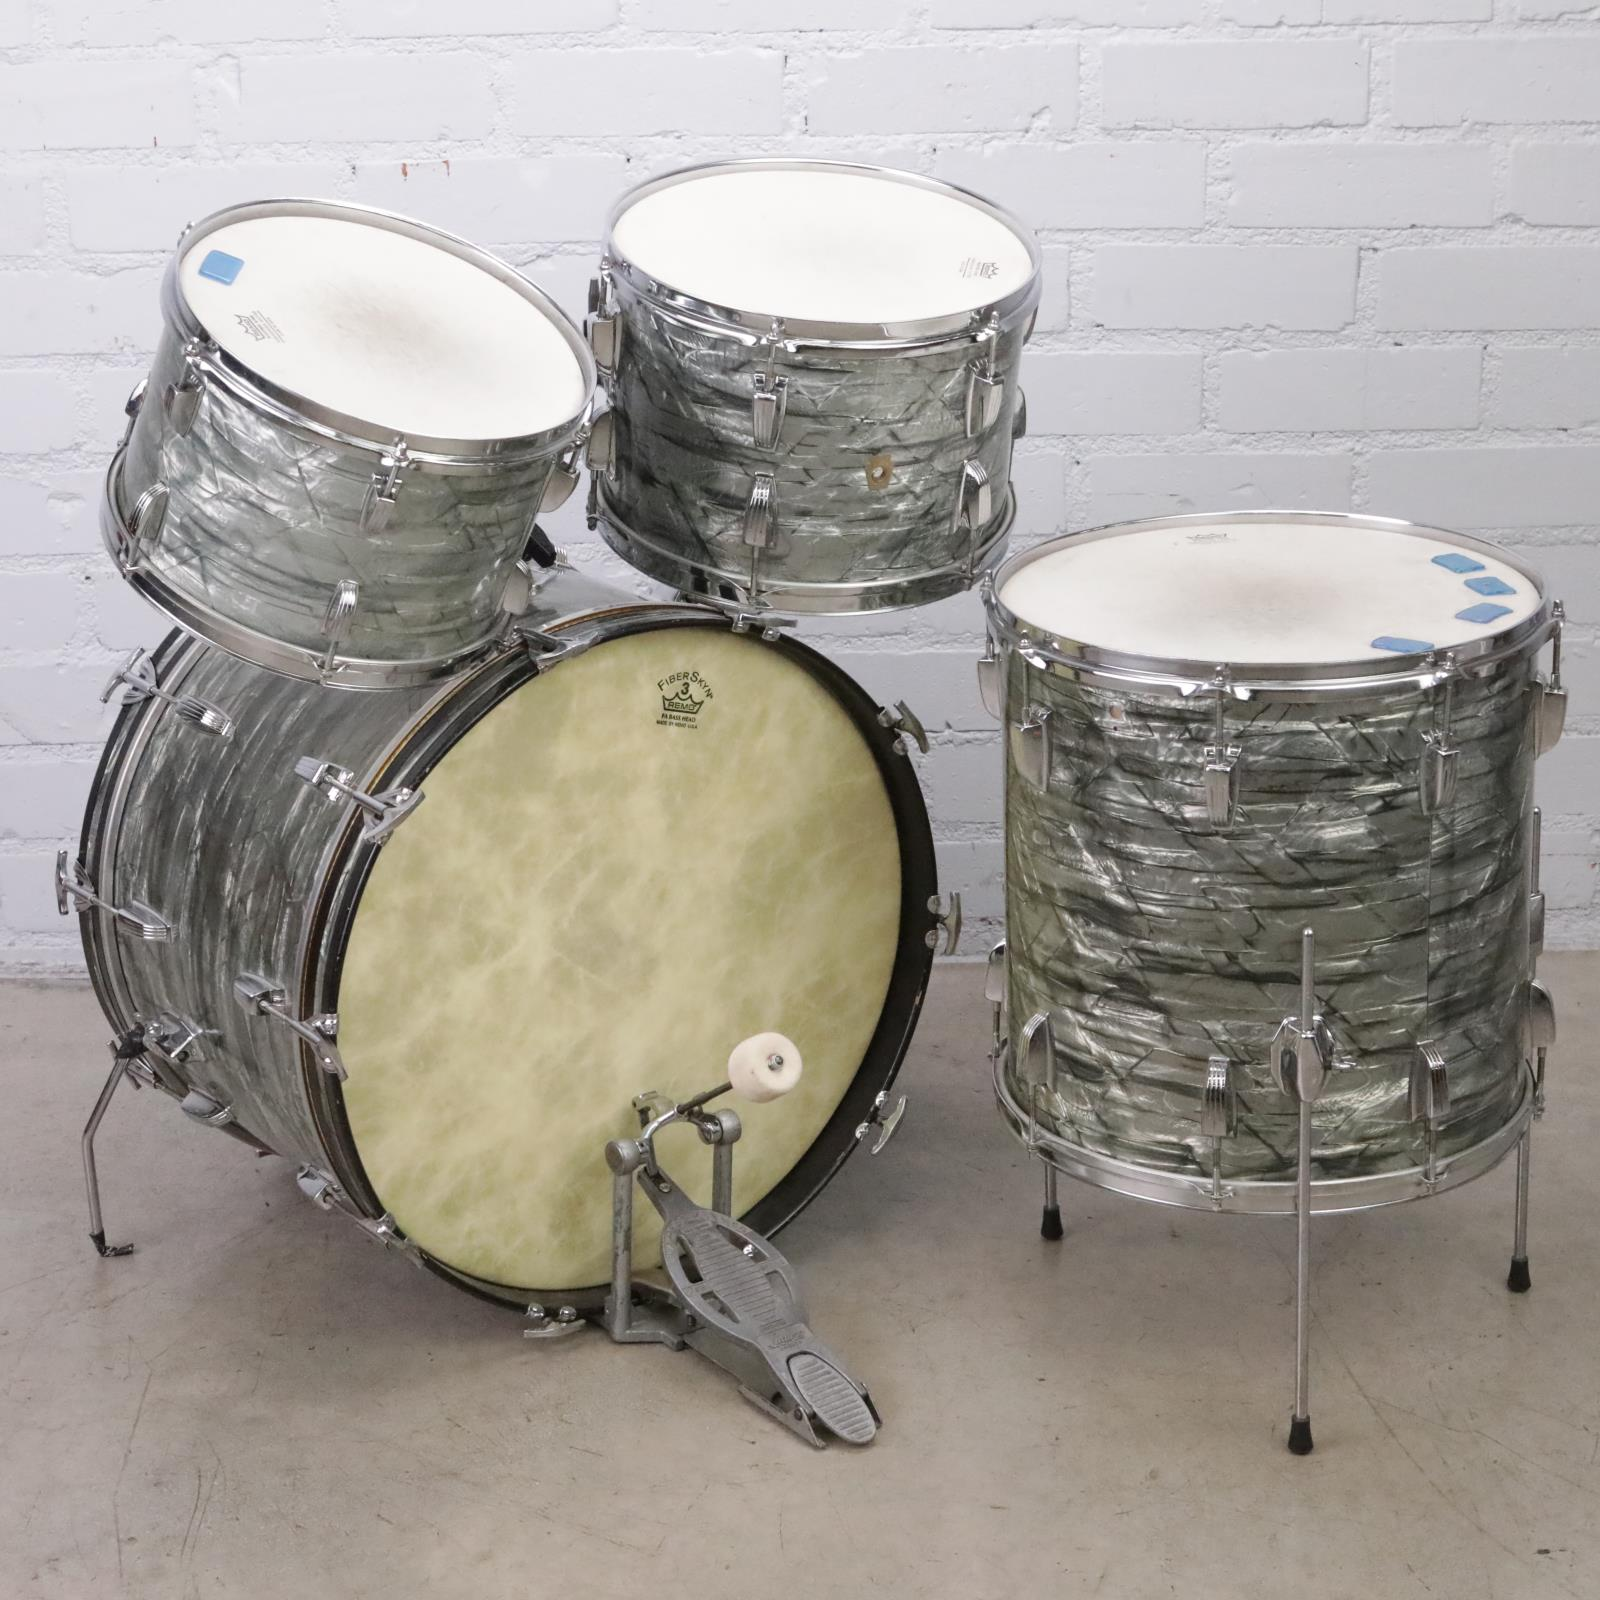 1966 Ludwig 4-Piece Sky Blue Pearl Drum Set Owned By David Roback #44765